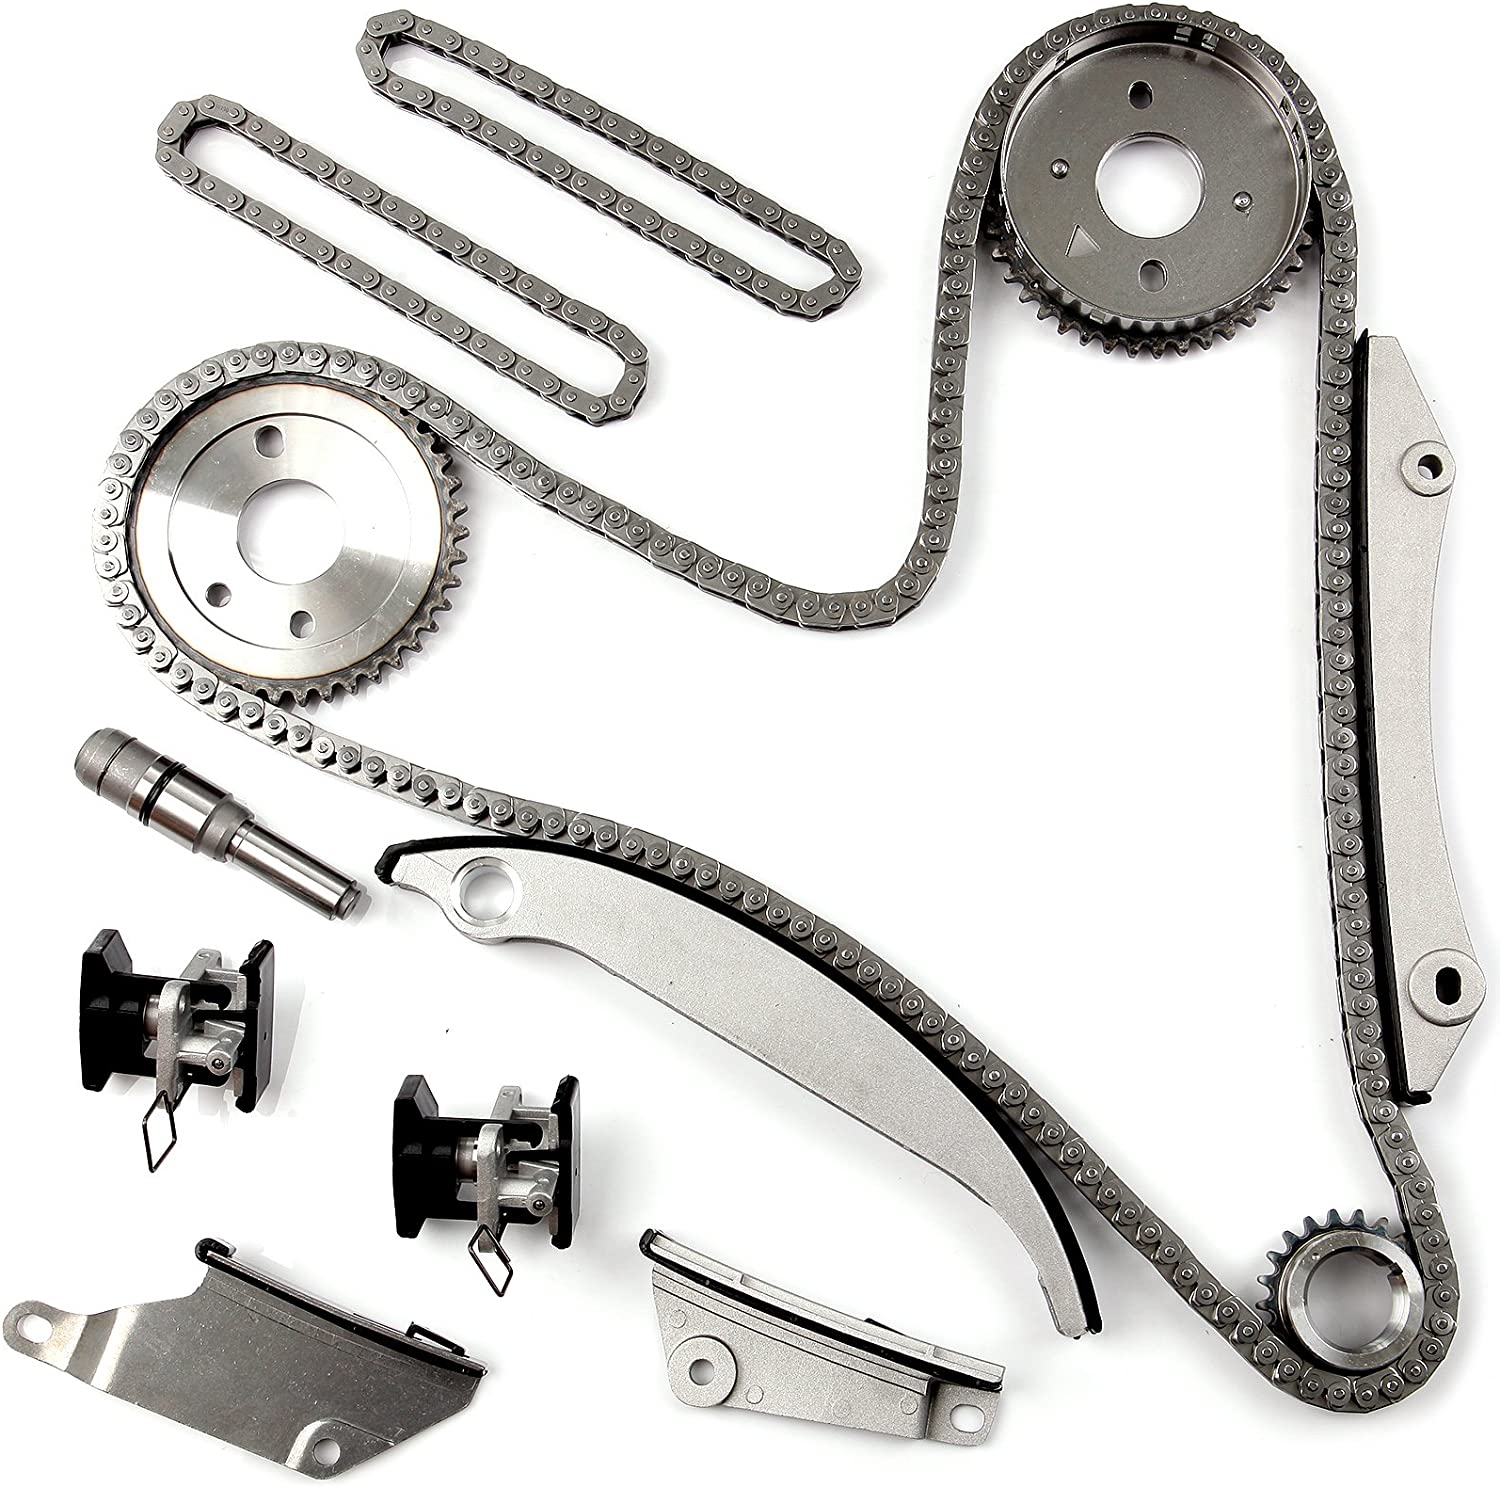 AUTOMUTO Timing Chain Kit fits 激安セール 300 for 初売り Concorde Intrepi Chrysler